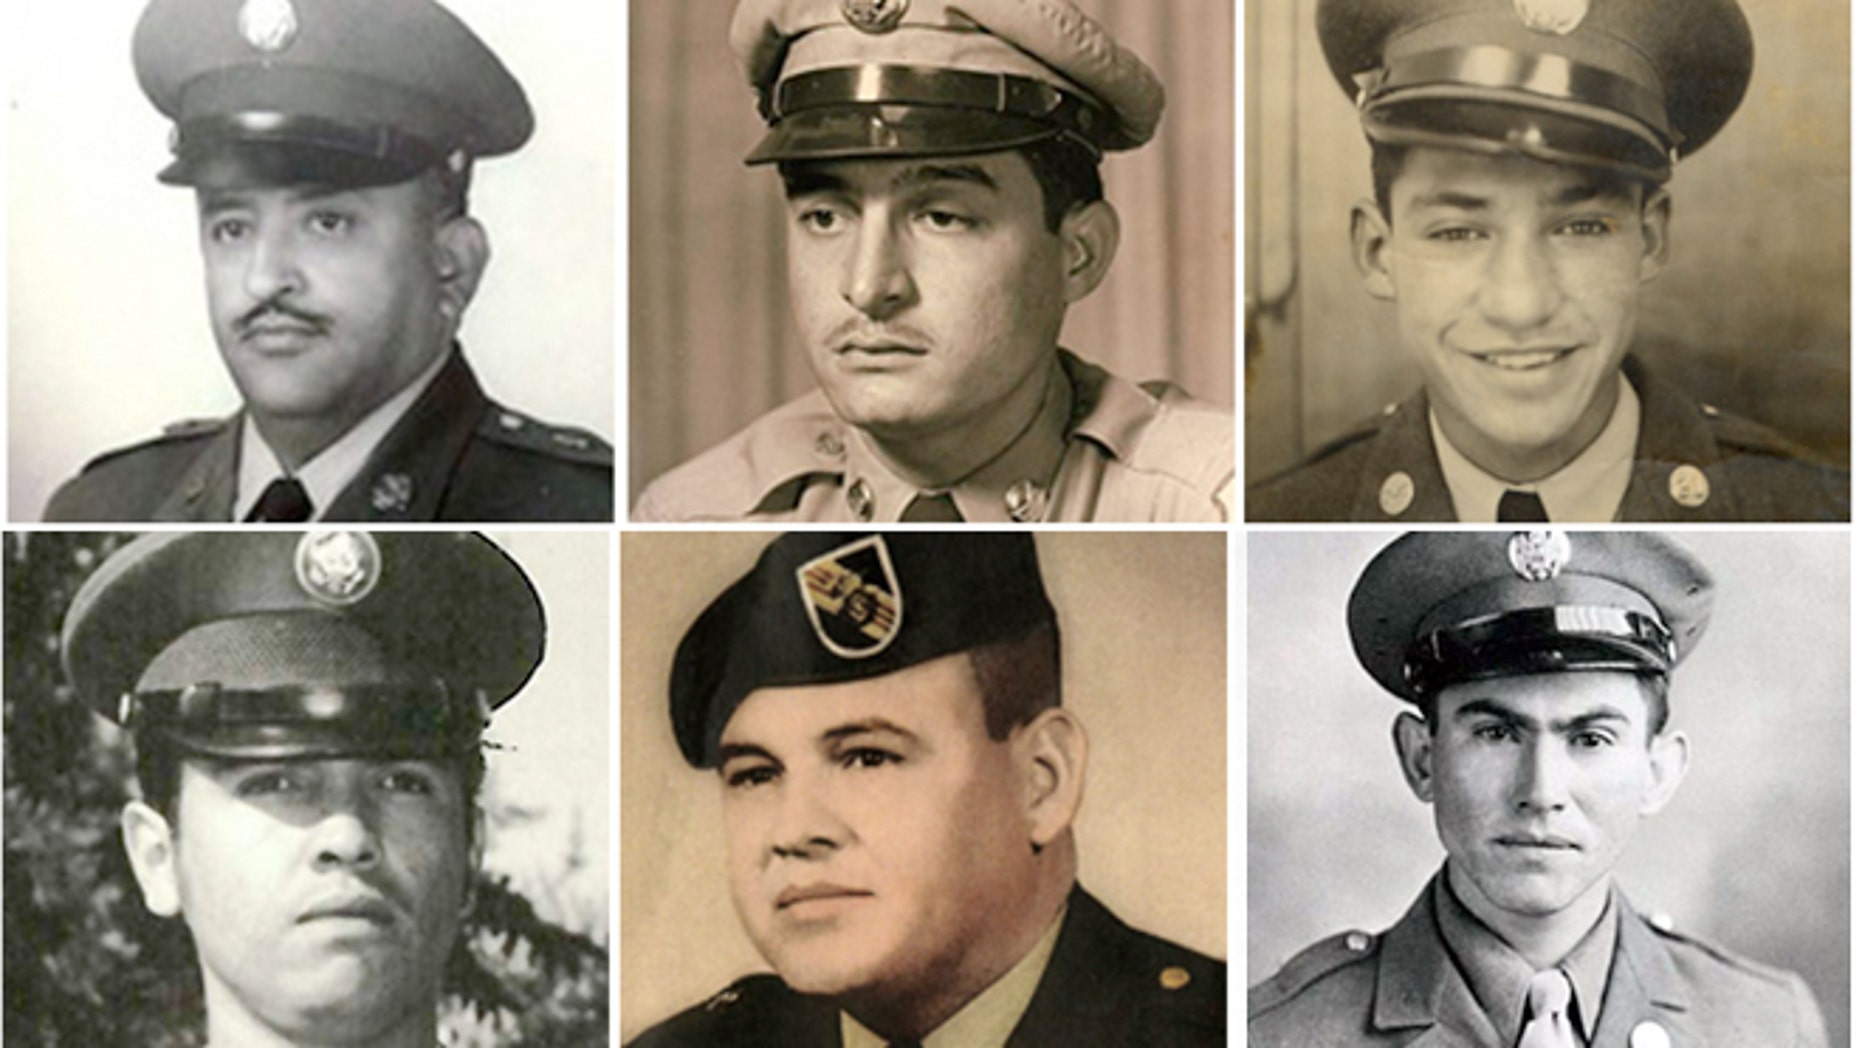 Following a congressionally-mandated review to ensure that eligible recipients were not bypassed due to prejudice Pres. Obama will award the Medal of Honor on March 18, 2014, to 24 Army veterans, including, clockwise from top left: Sgt. 1st Class Eduardo Corral Gomez, Master Sgt. Juan E. Negron, Master Sgt. Mike C. Pena, Pvt. Pedro Cano, Sgt. 1st Class Jose Rodela and Spec. 4 Santiago J. Erevia. (AP Photo/U.S. Army)